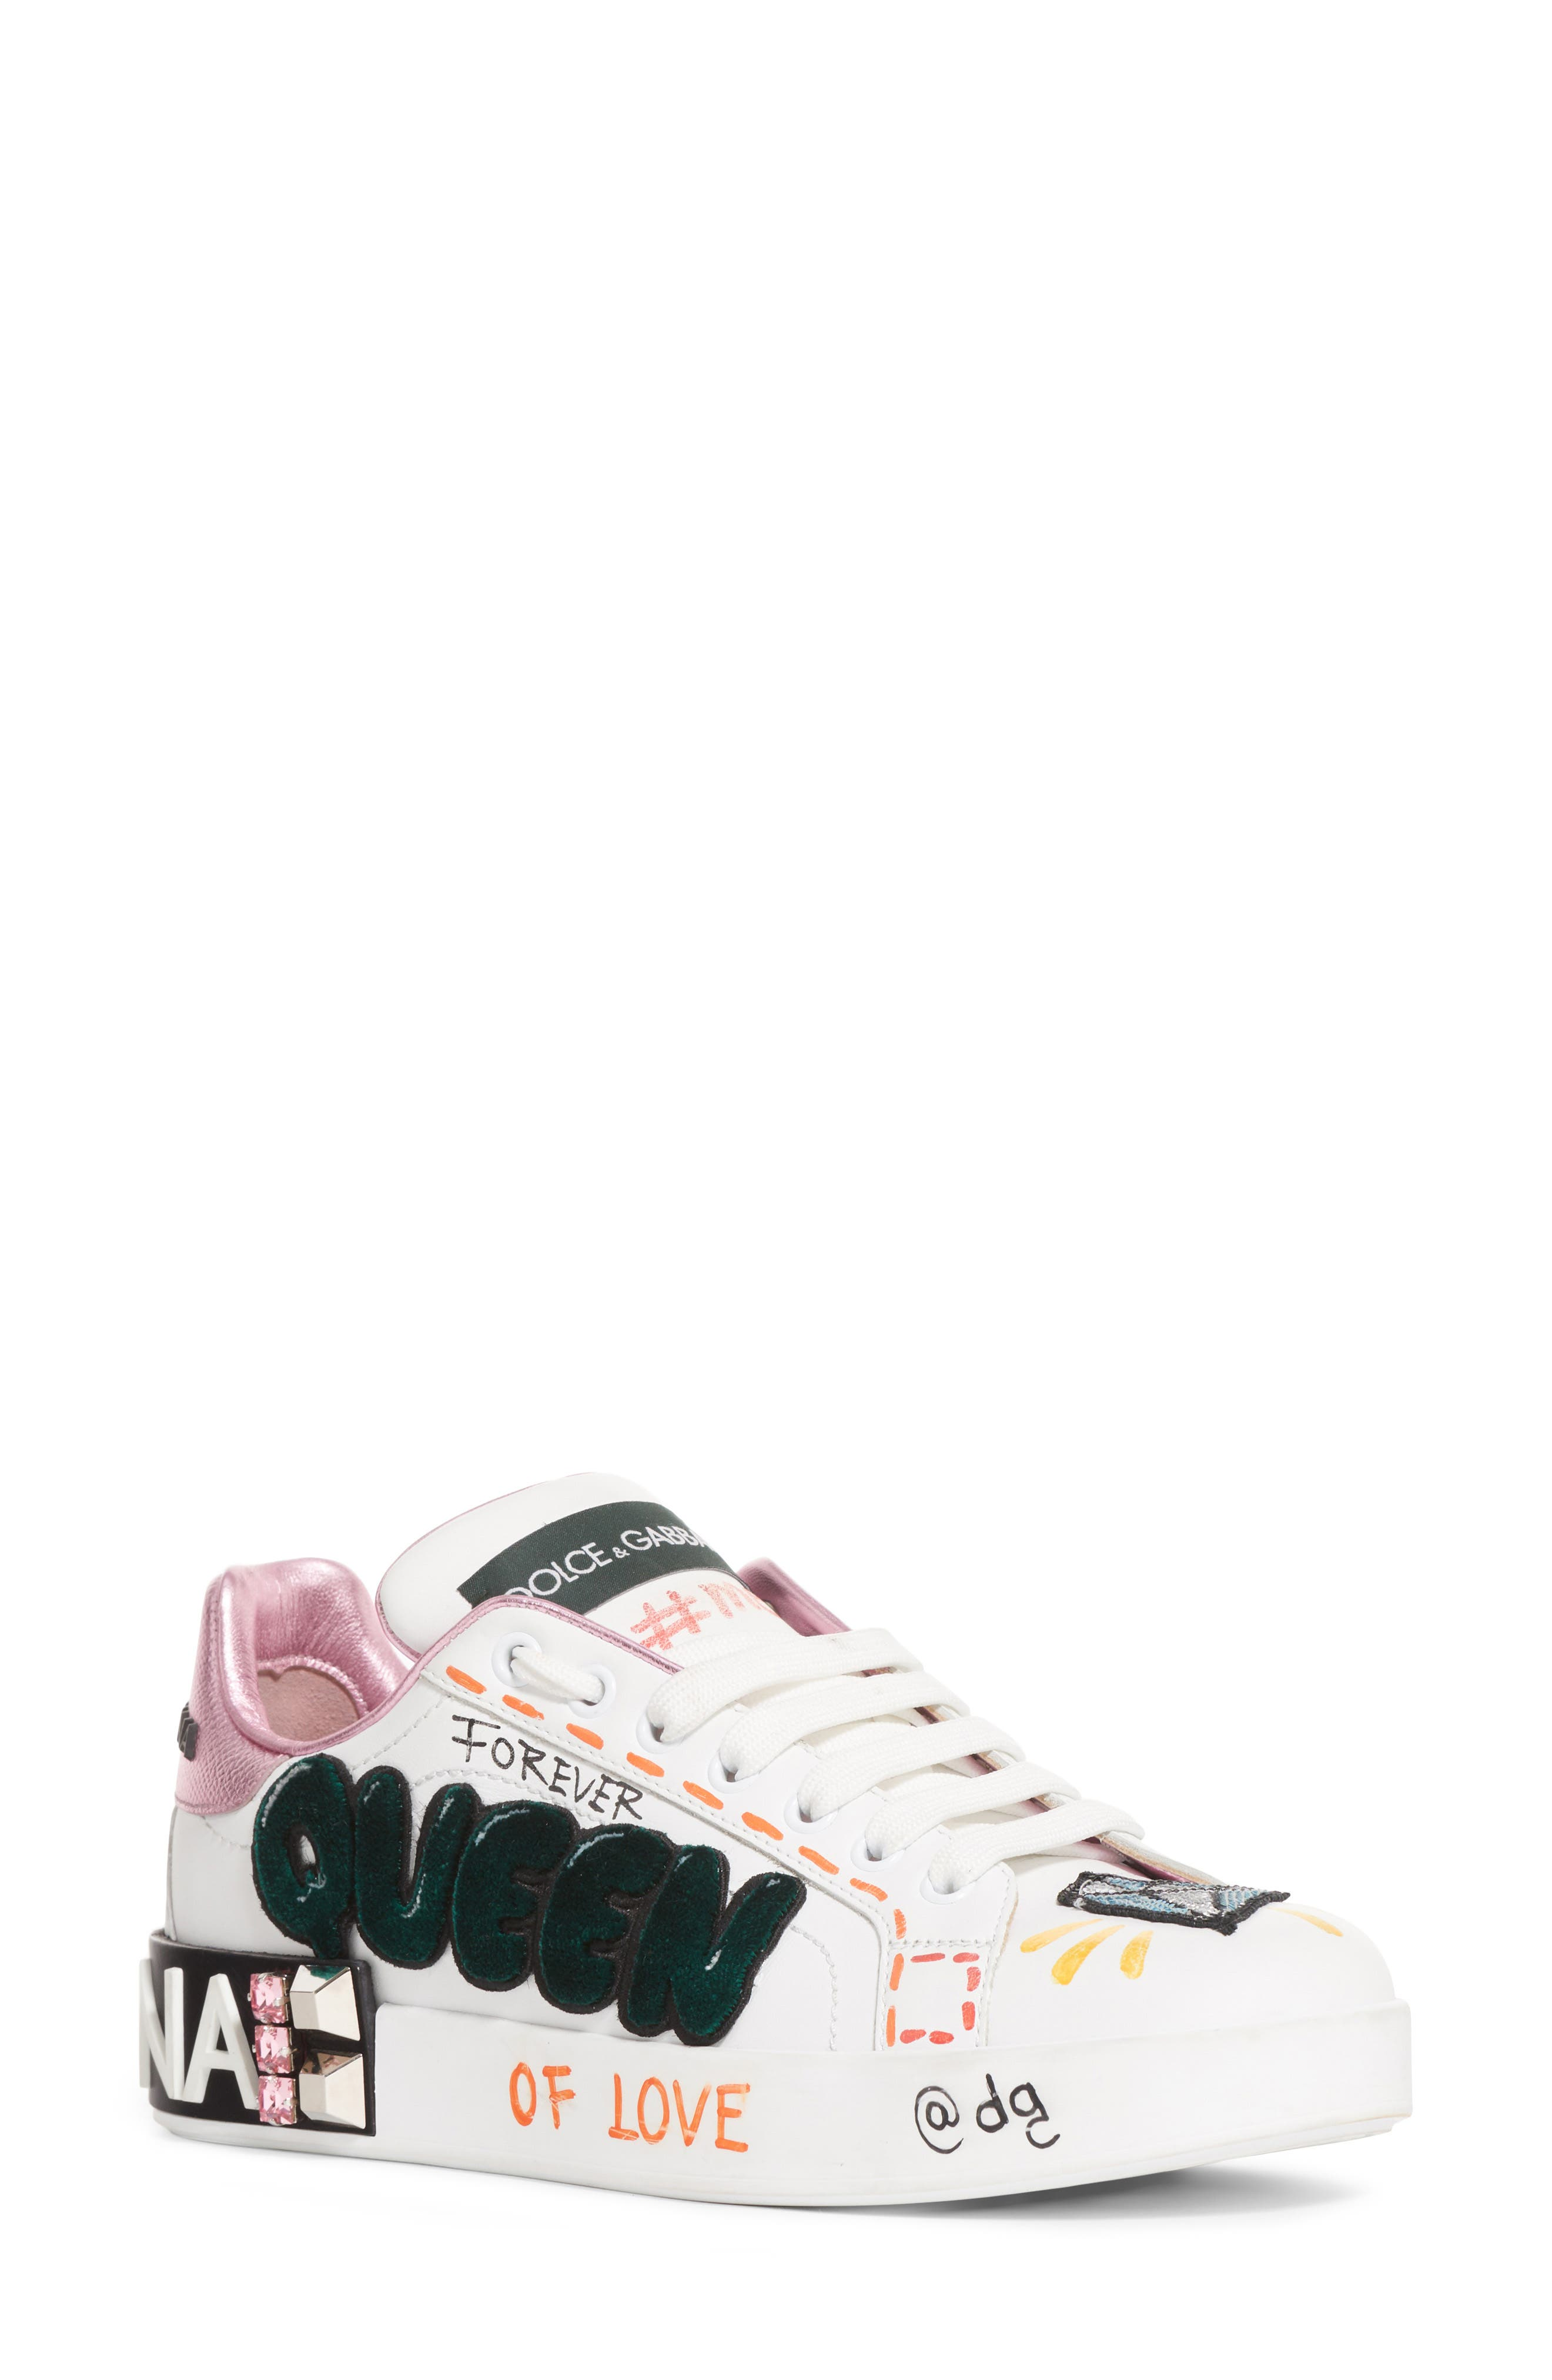 DOLCE&GABBANA, Queen Graffiti Lace-Up Sneaker, Main thumbnail 1, color, 110